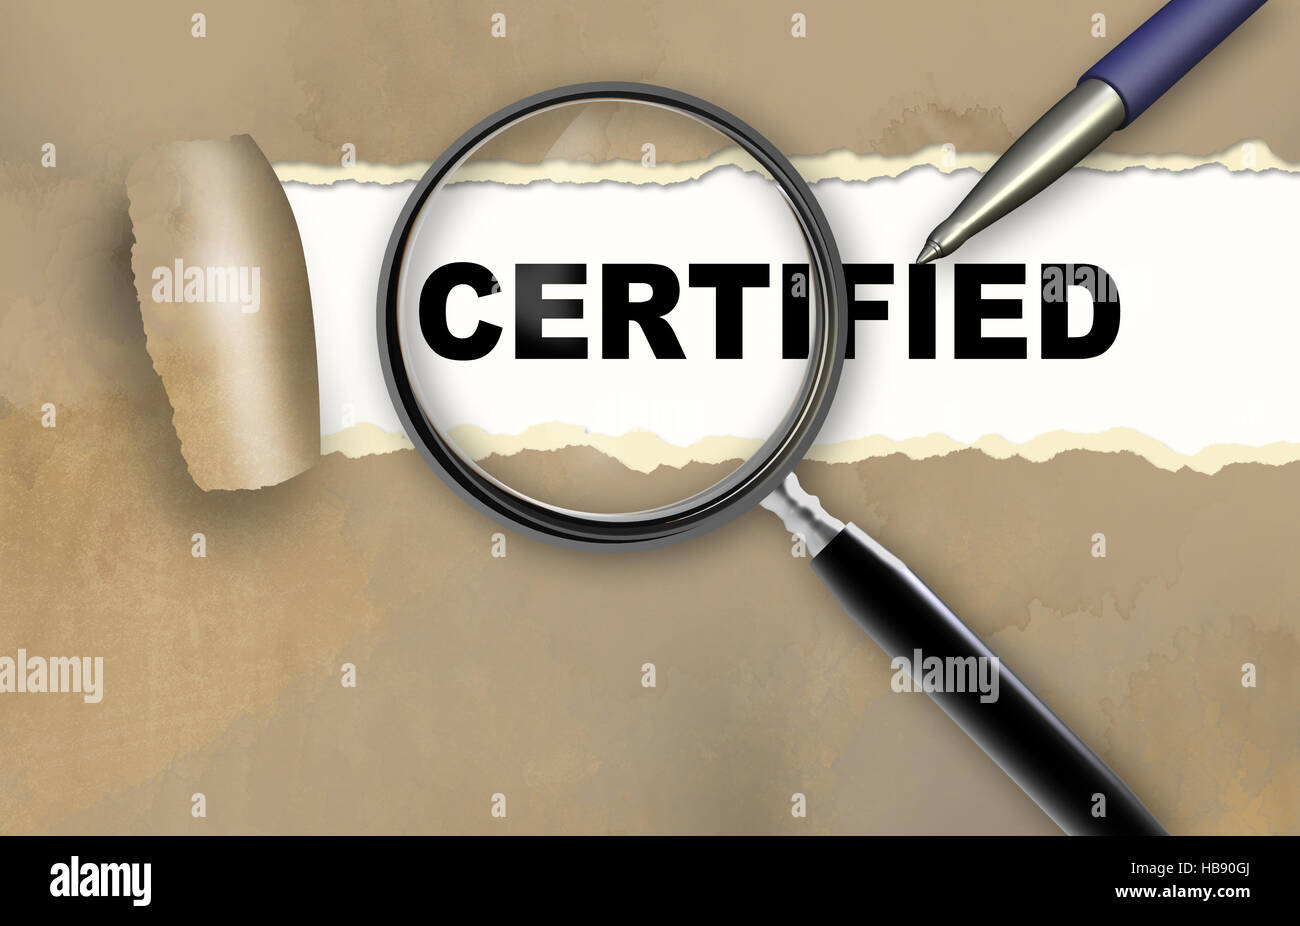 certified - Stock Image